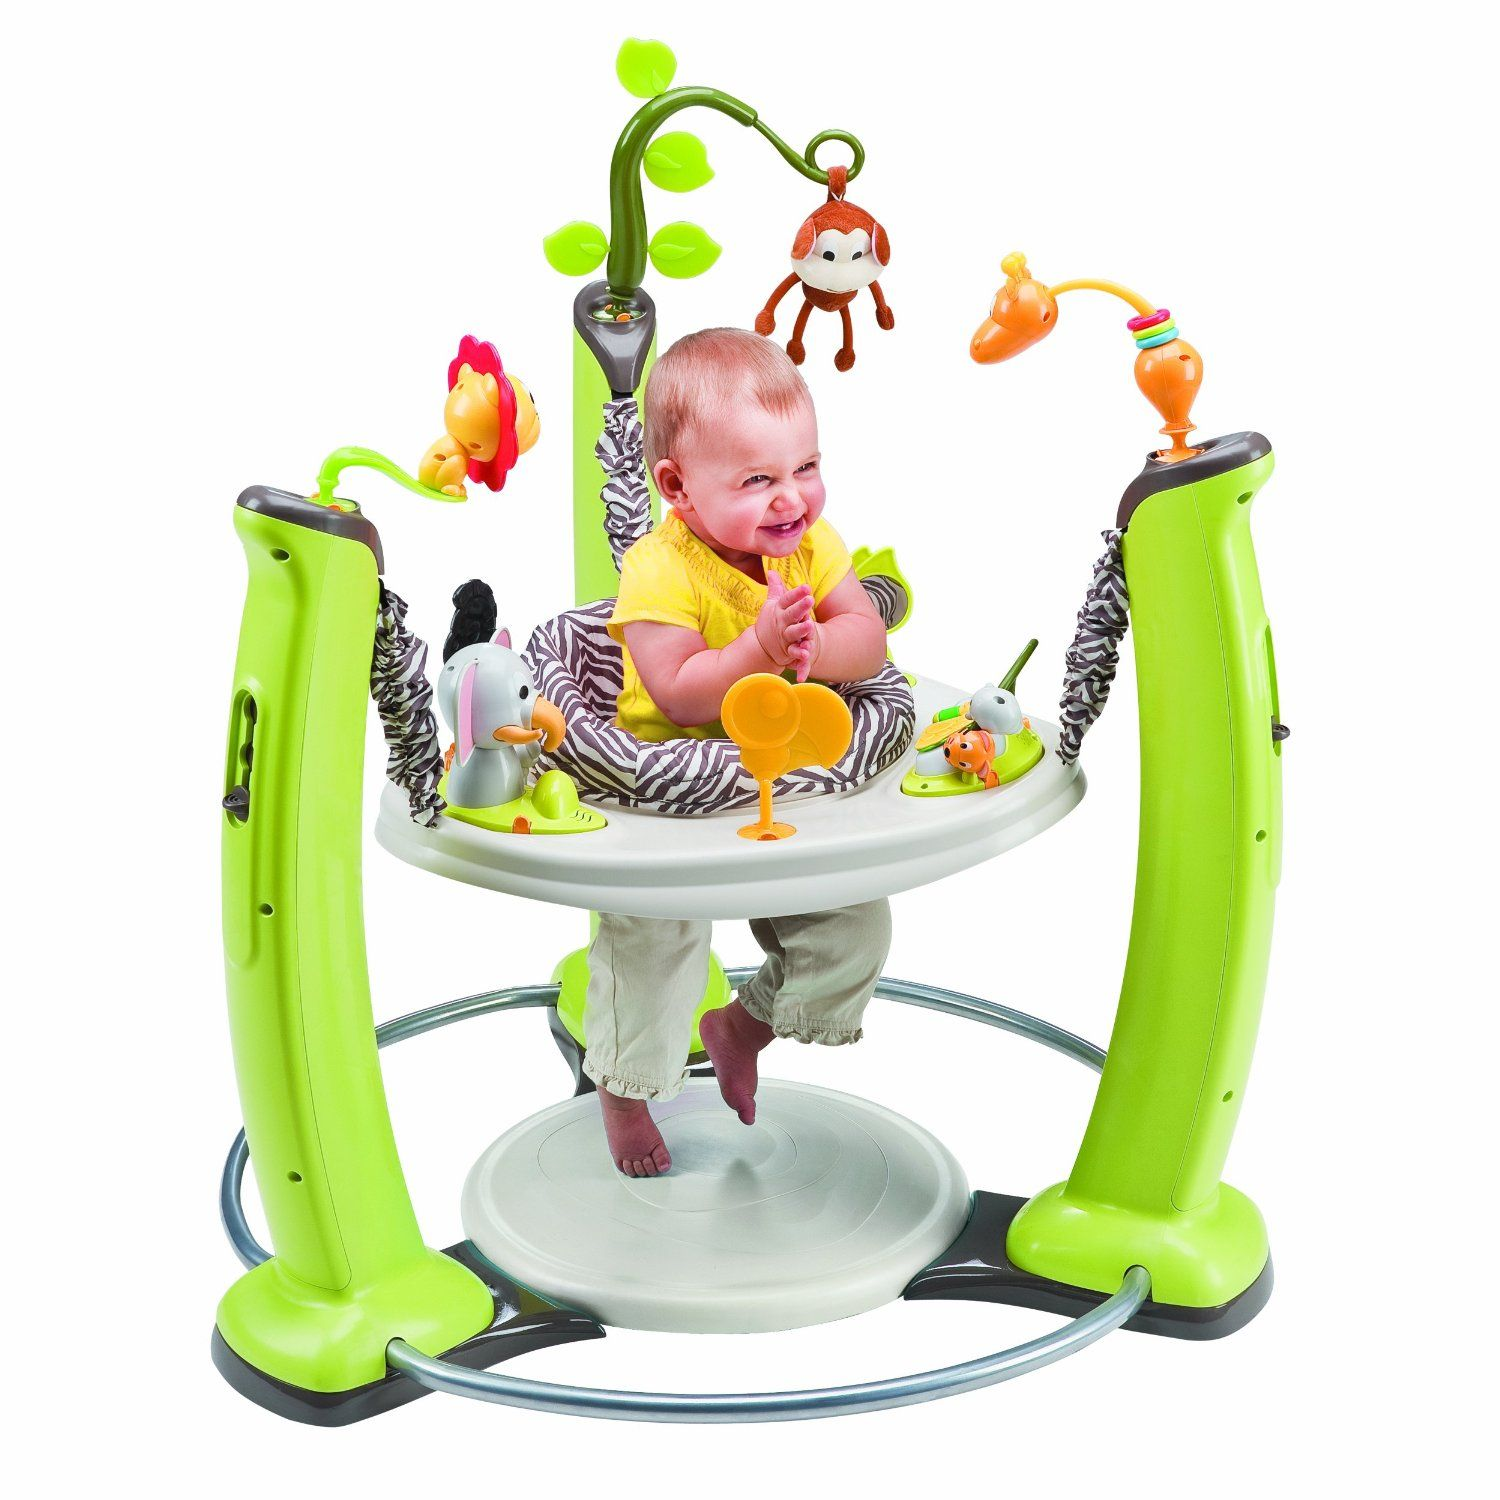 The Evenflo ExerSaucer #Jump & Learn offers parents a #safe and ...